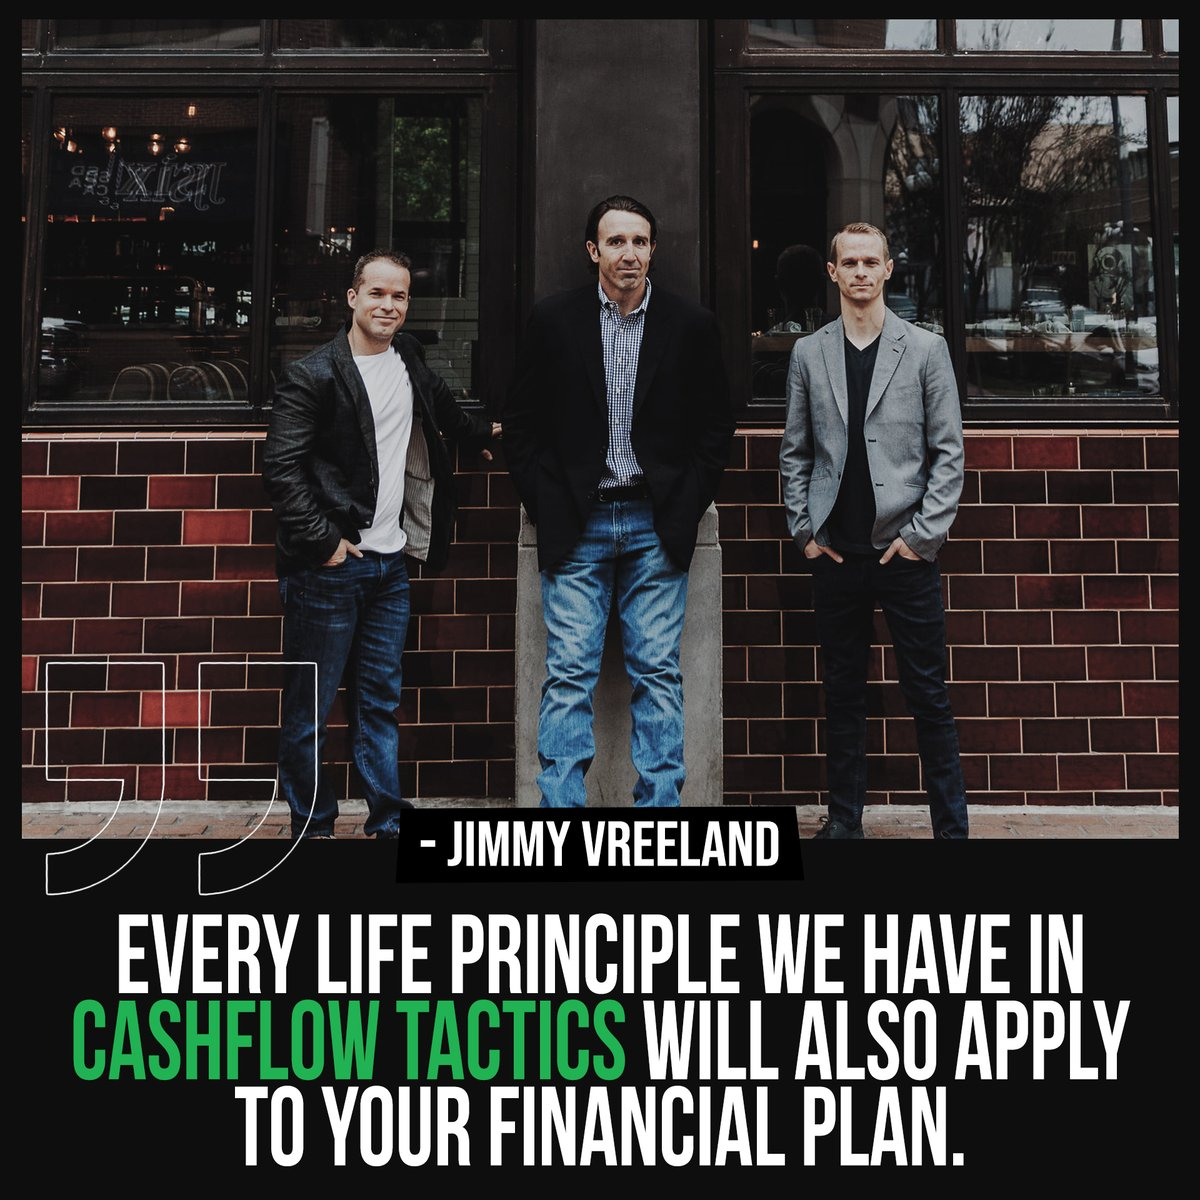 We're not here to just educate you on finance. ⁣ ⁣ We're here to help educate you on life!⁣  #financialfreedom #cashflow #cashflowtactics #financialindependence #pillarsofwealth #richthoughts #richmindset #debtfree #realestatepic.twitter.com/egrzMiM9S7